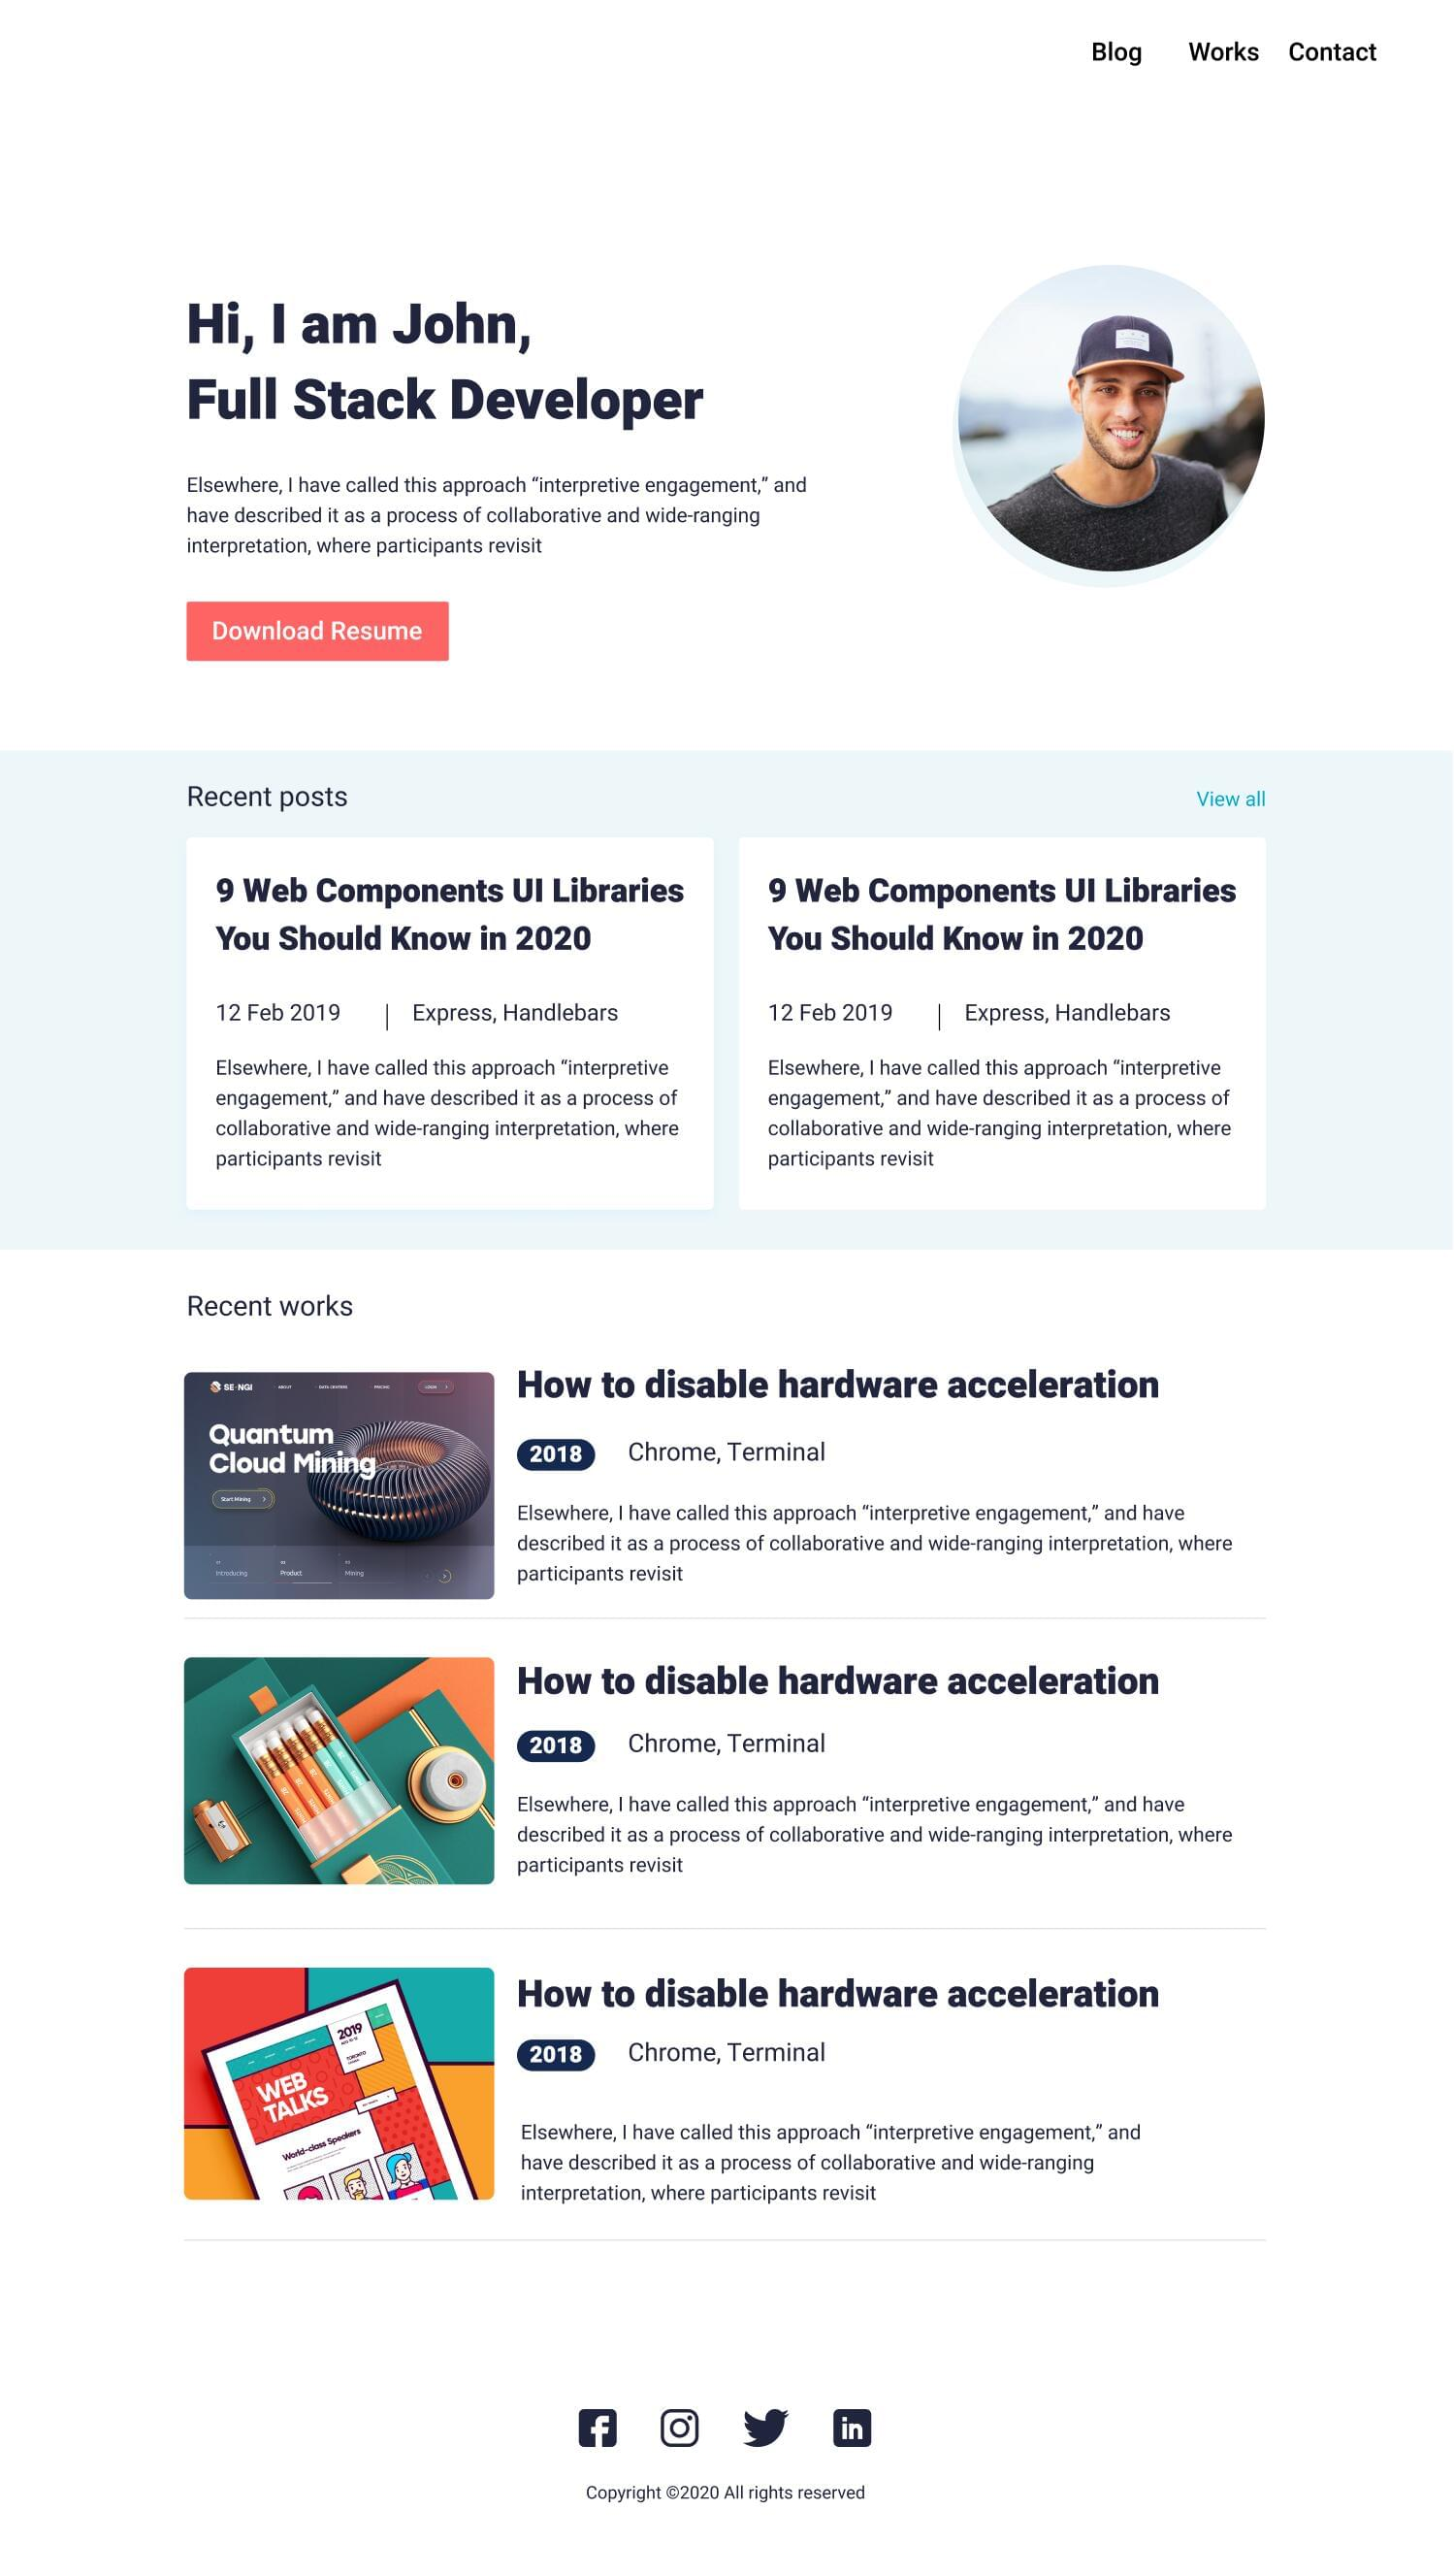 Responsive Blog or Portfolio Website using Gatsby with Contentful CMS or Prismic  by tinjothomasc - 117660